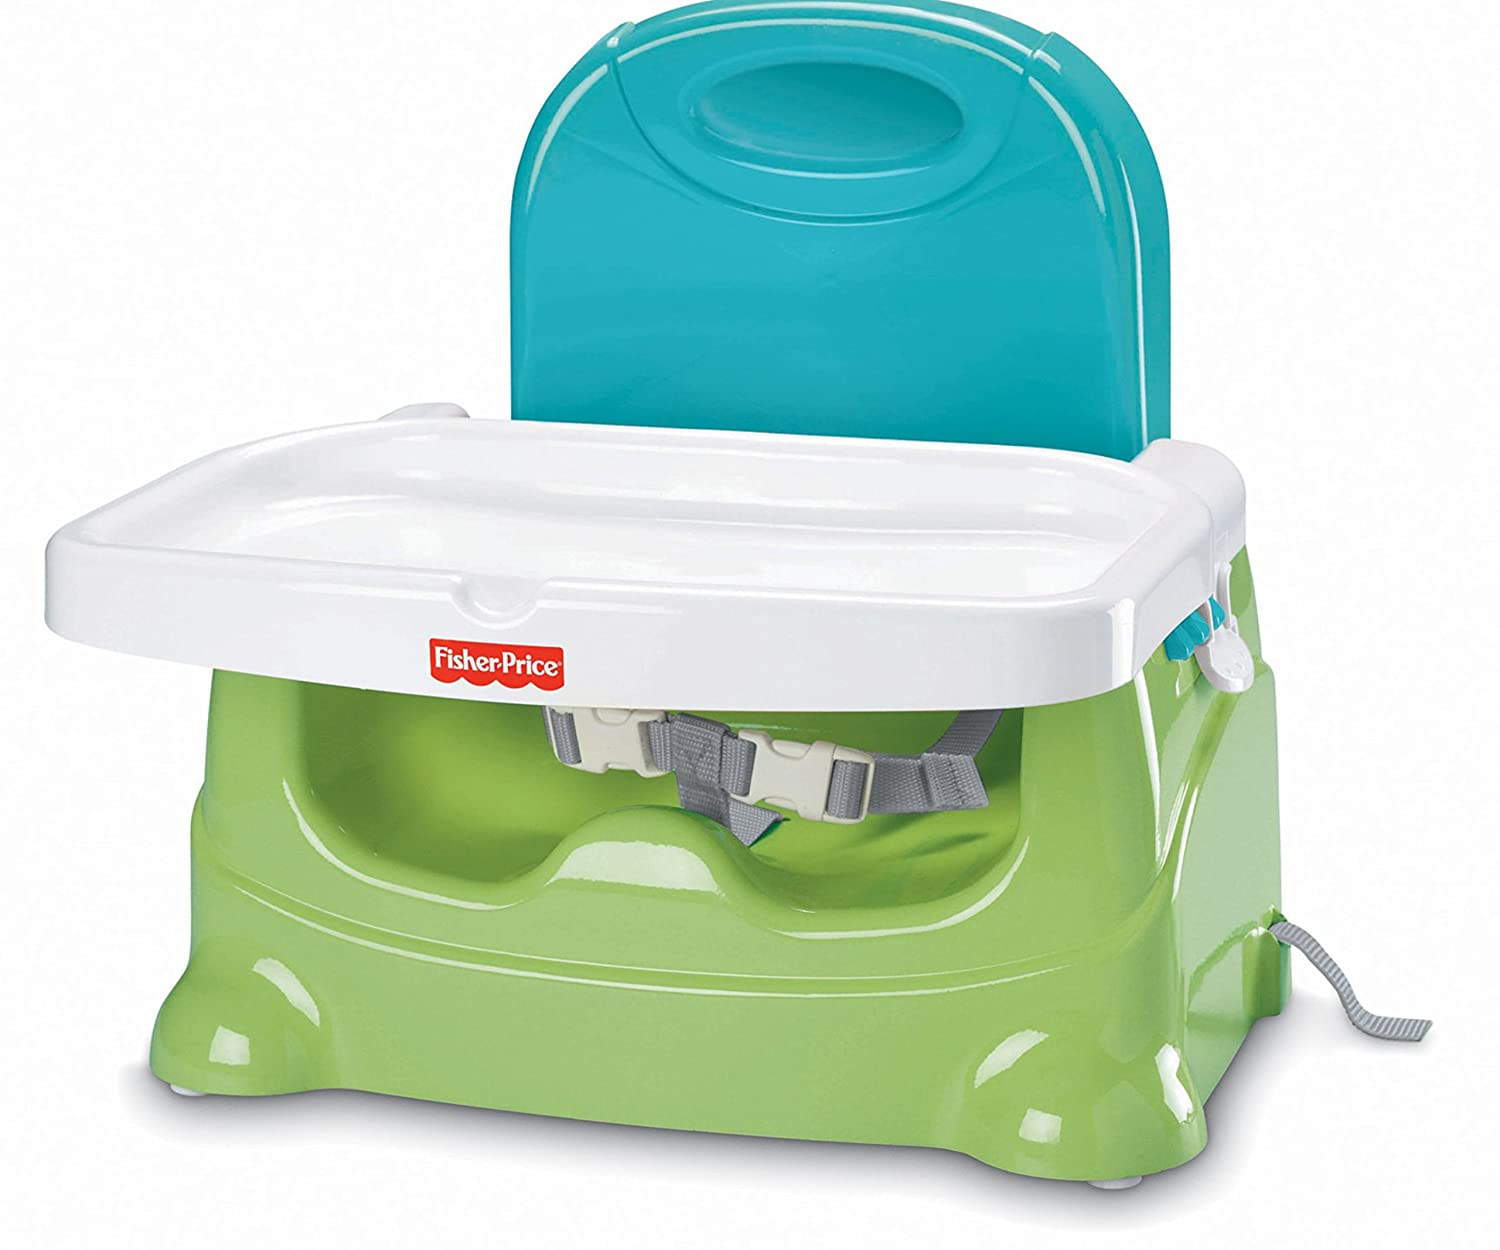 Fisher-Price Healthy Care Booster Seat, Green/Blue Fisher Price V8638